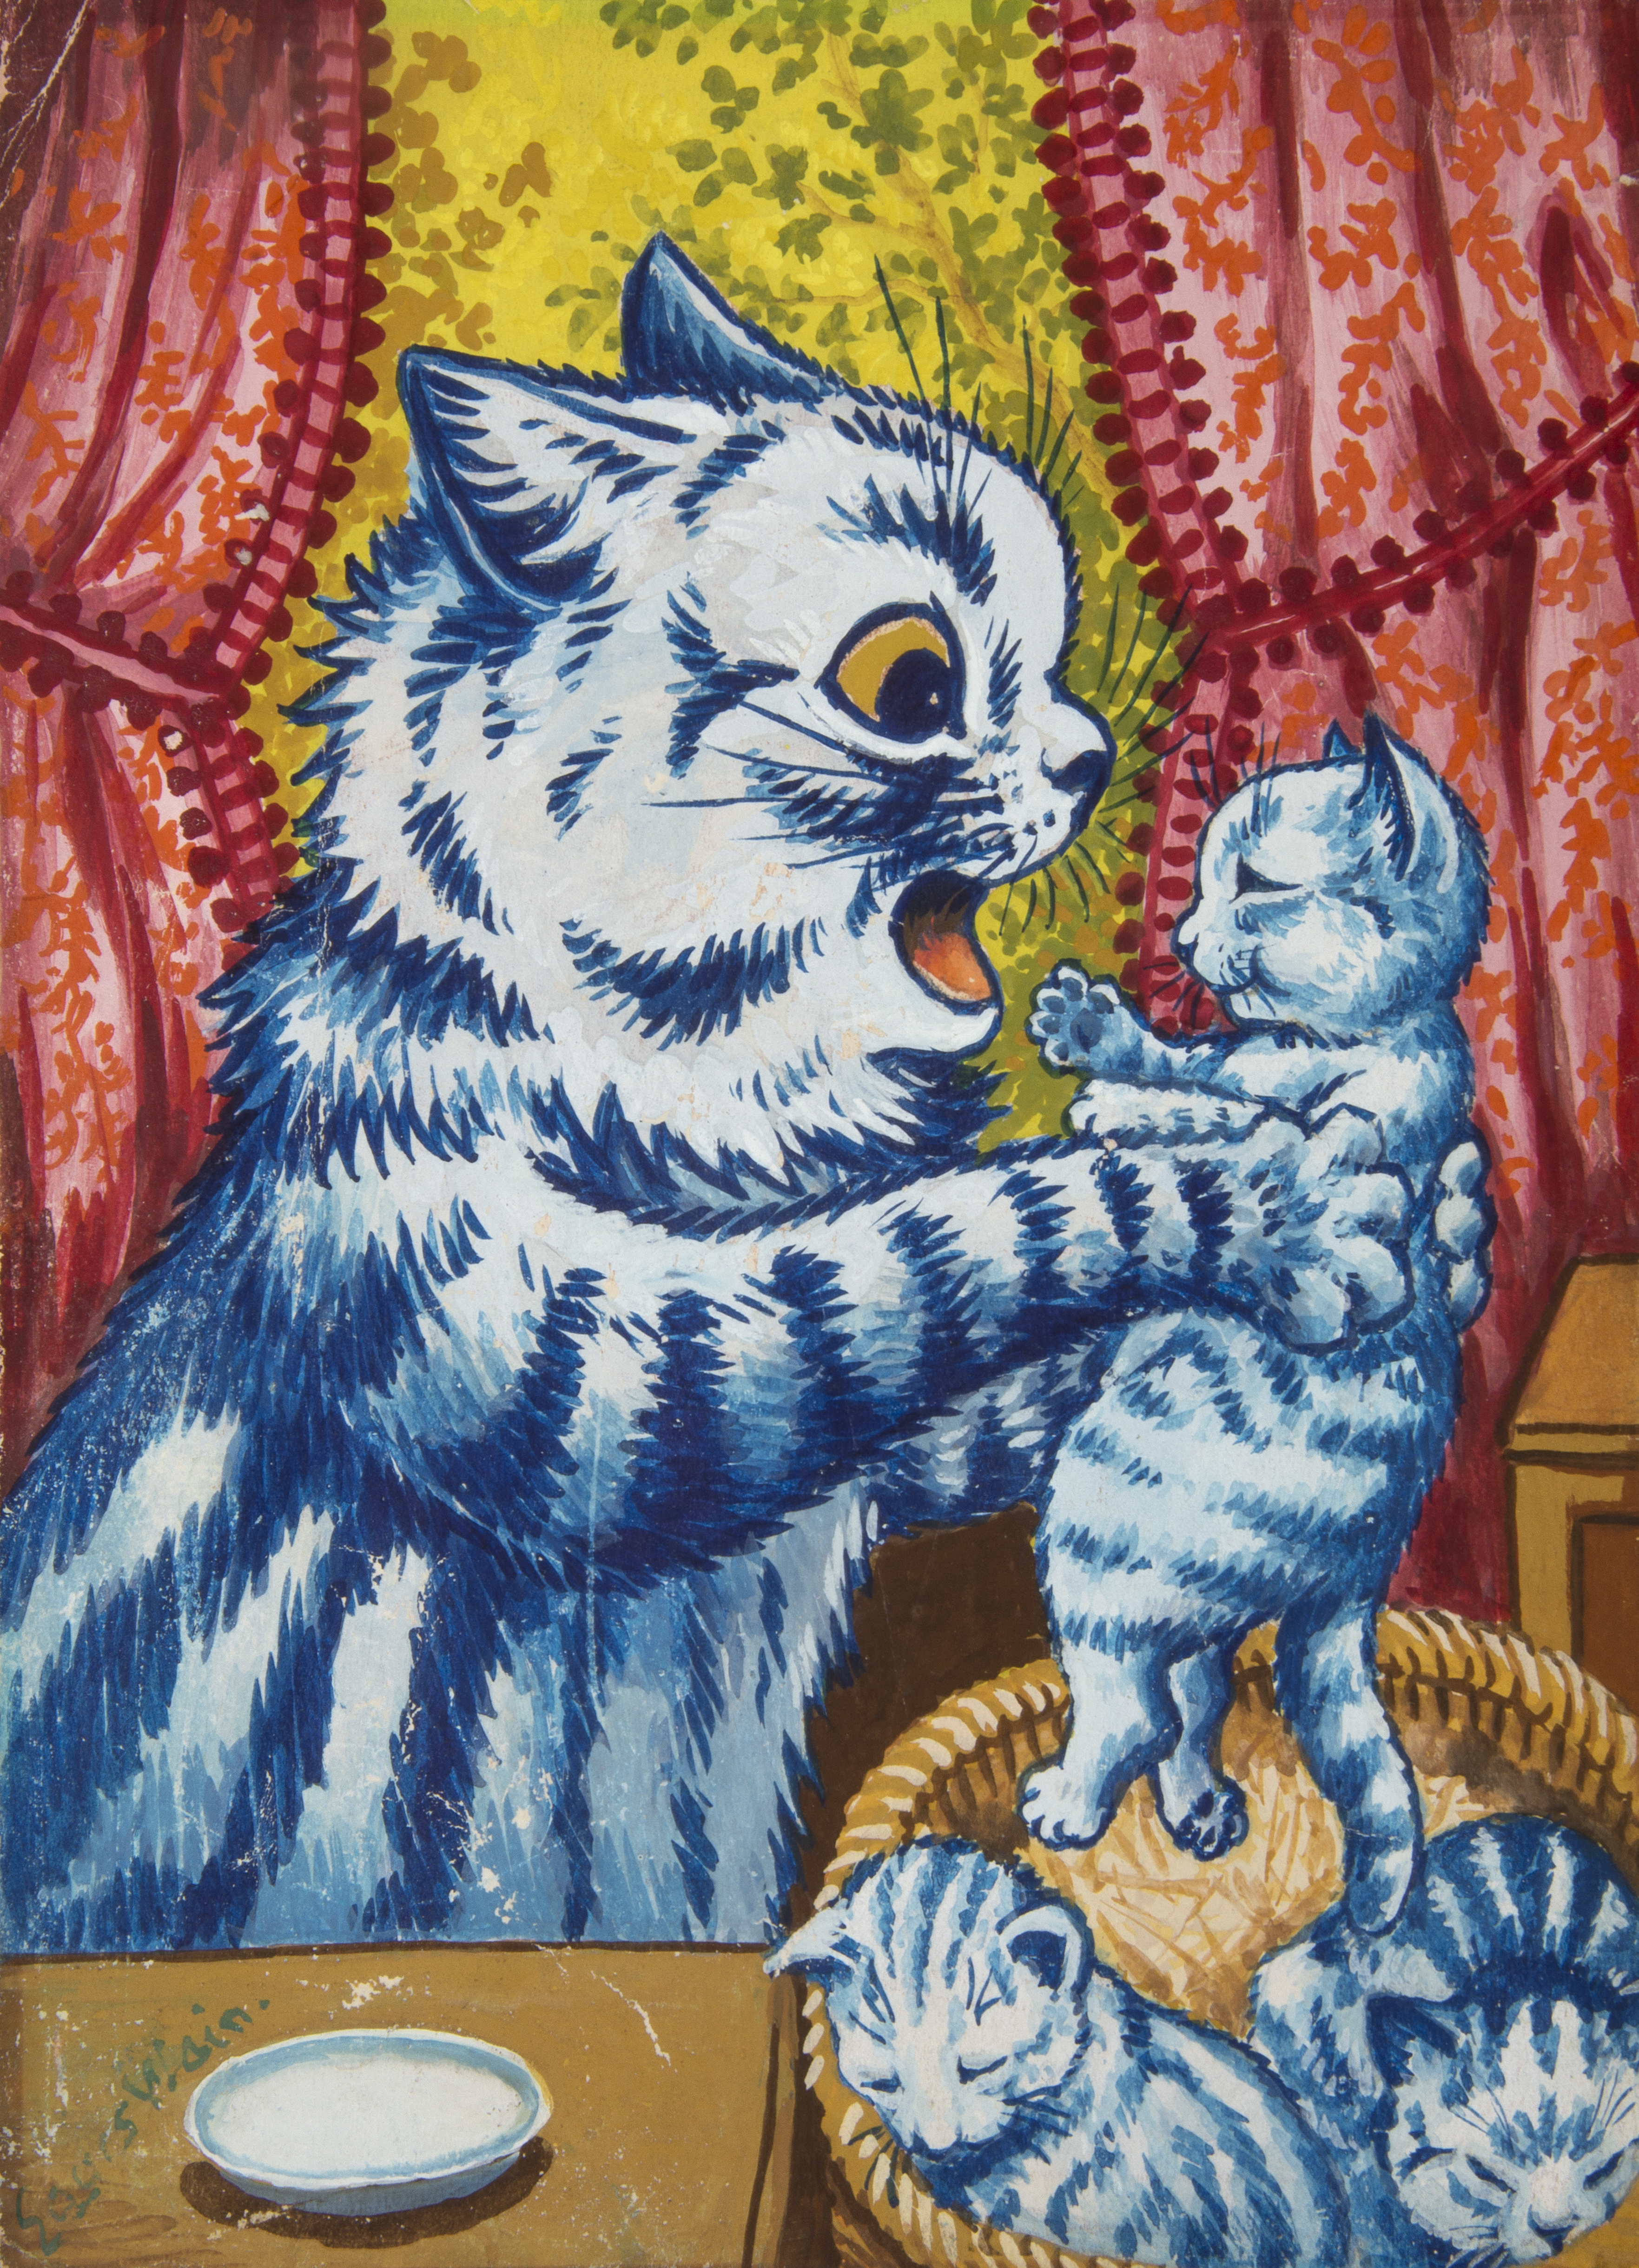 The Colorful, Dancing, Psychedelic Cats of Louis Wain - Artsy